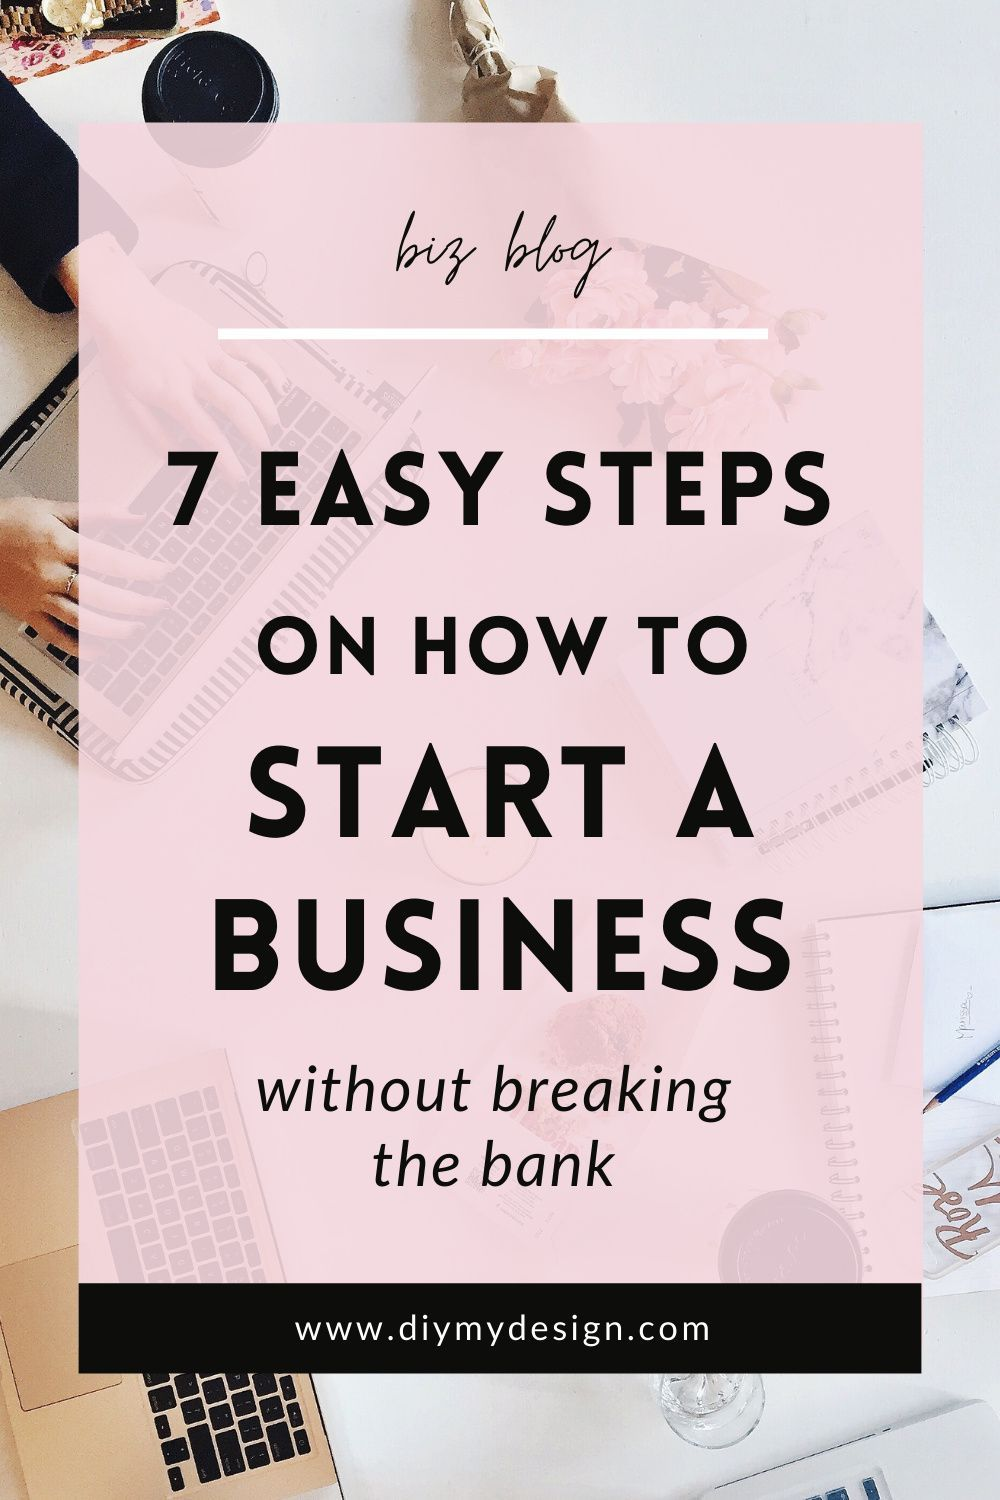 7 Easy Steps on how to start a business without br